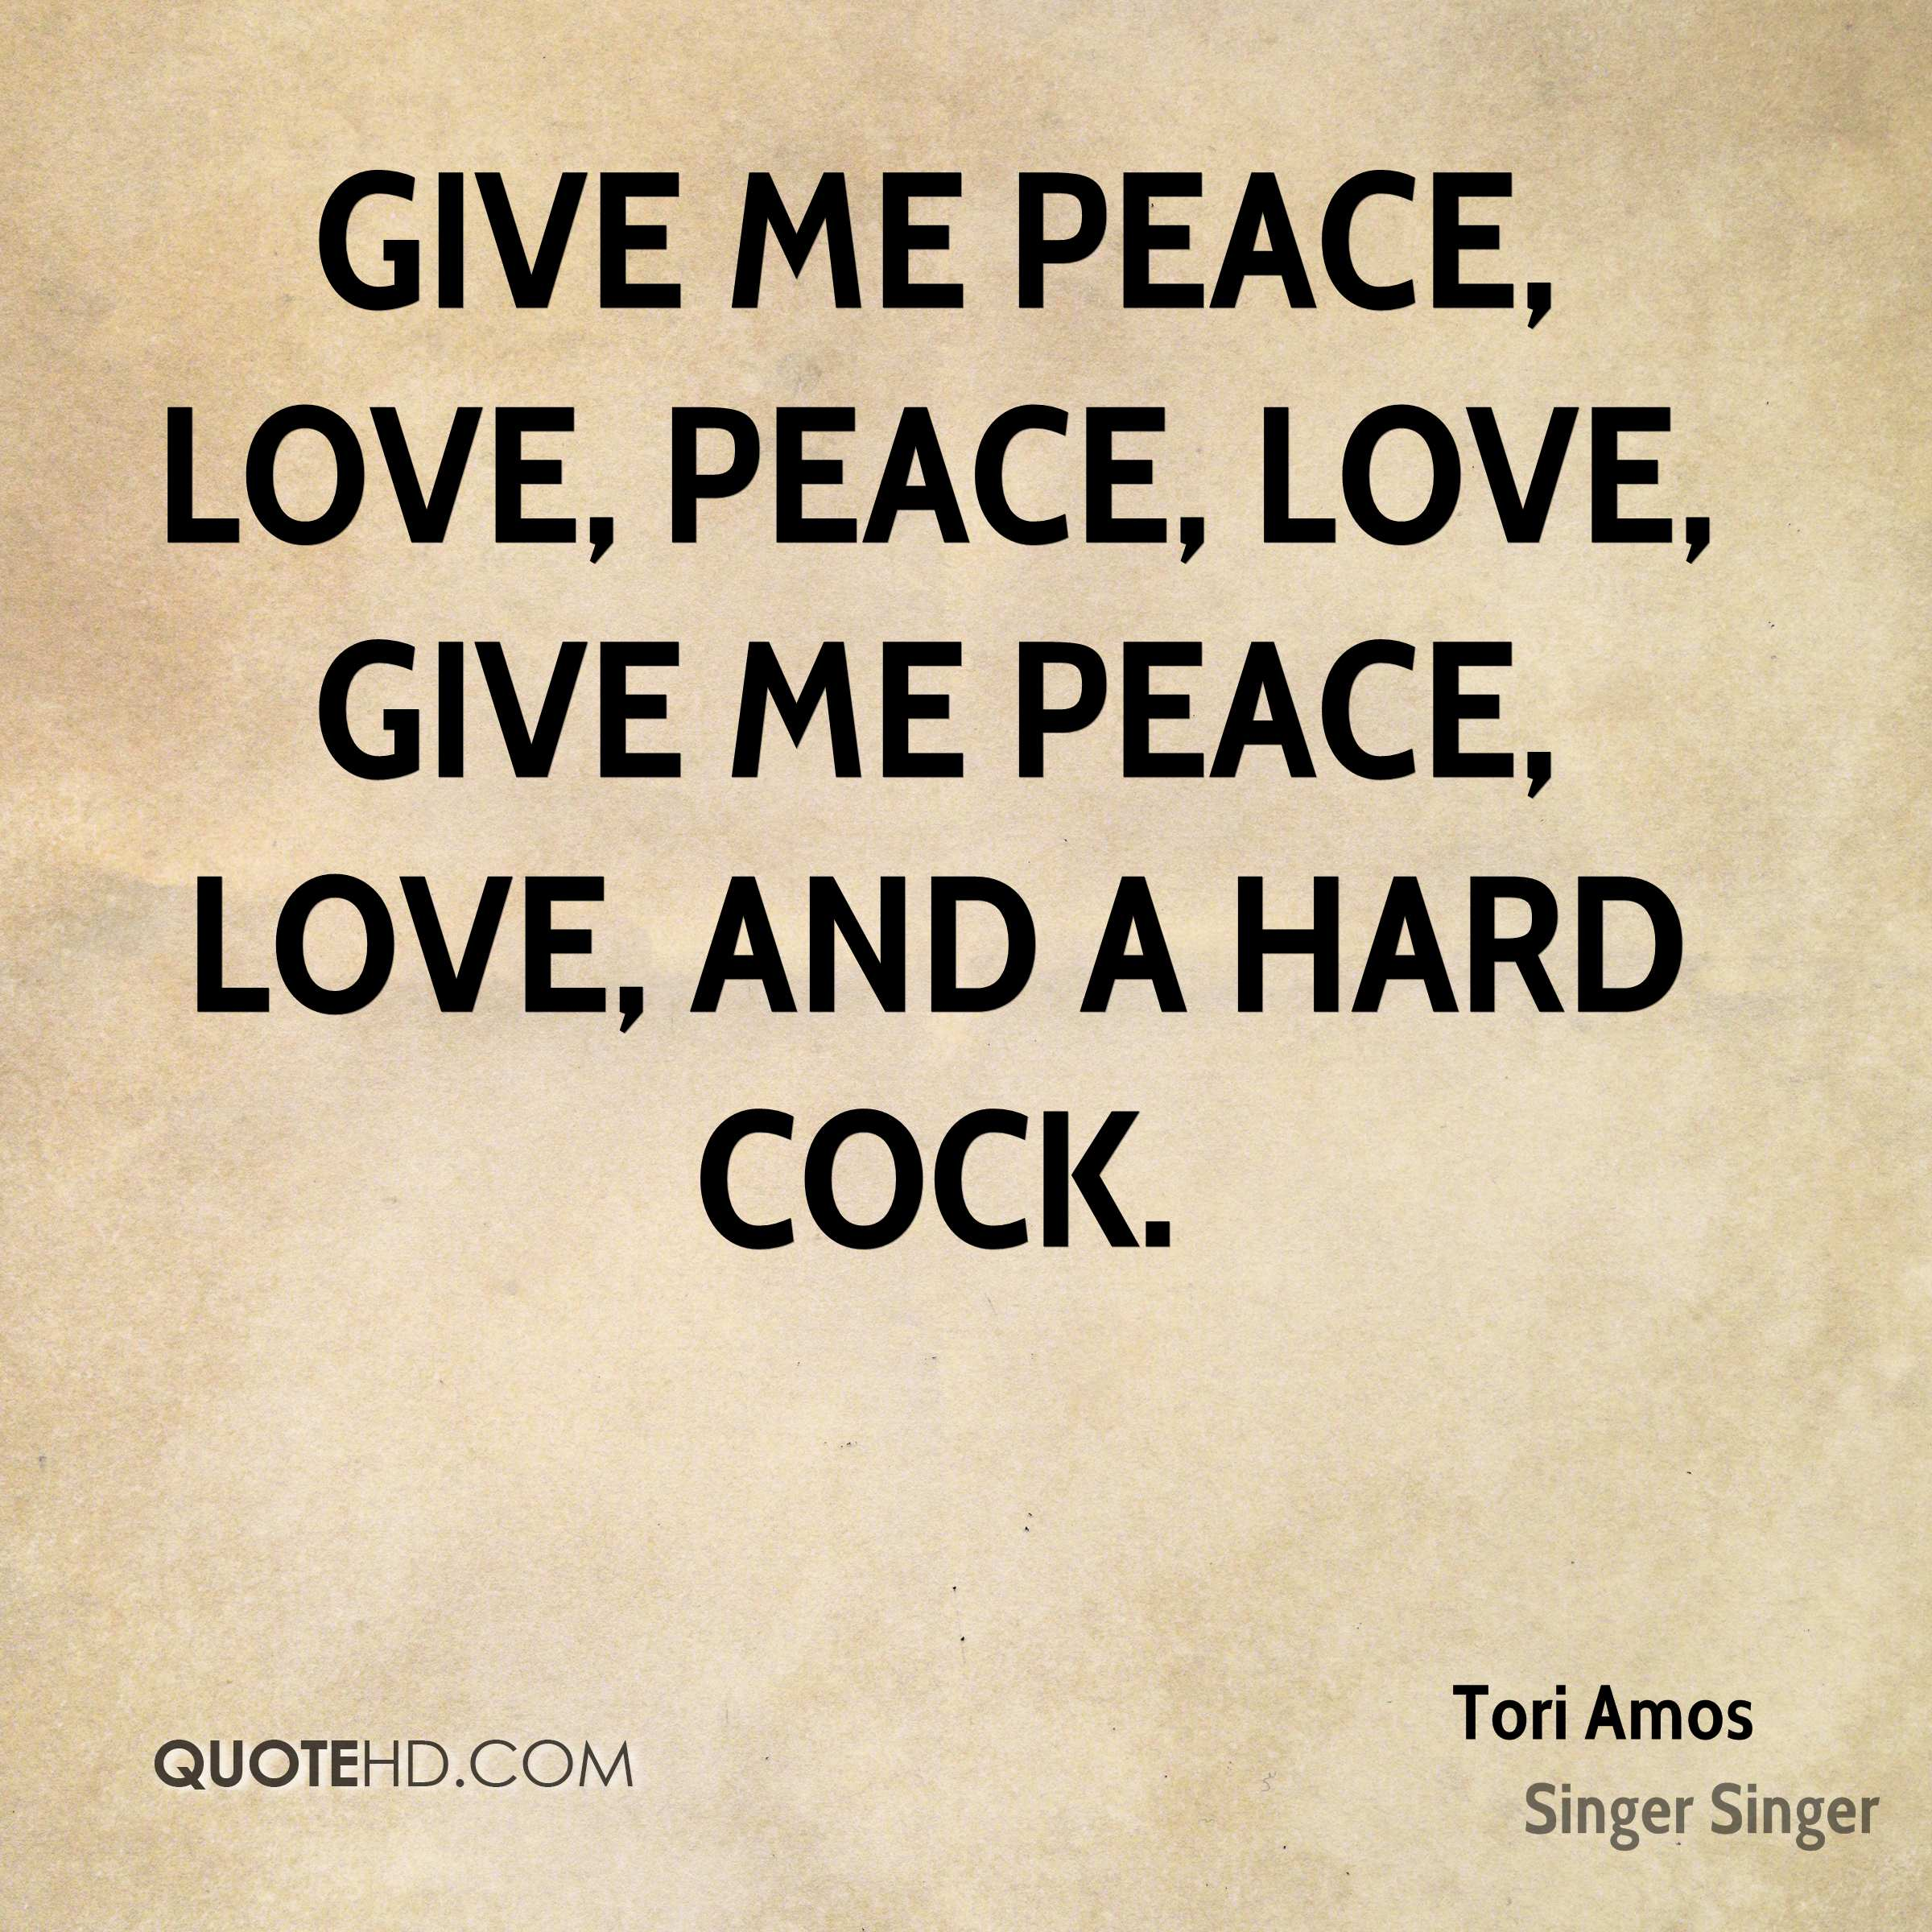 Peace And Love Quotes Enchanting Tori Amos Quotes  Quotehd